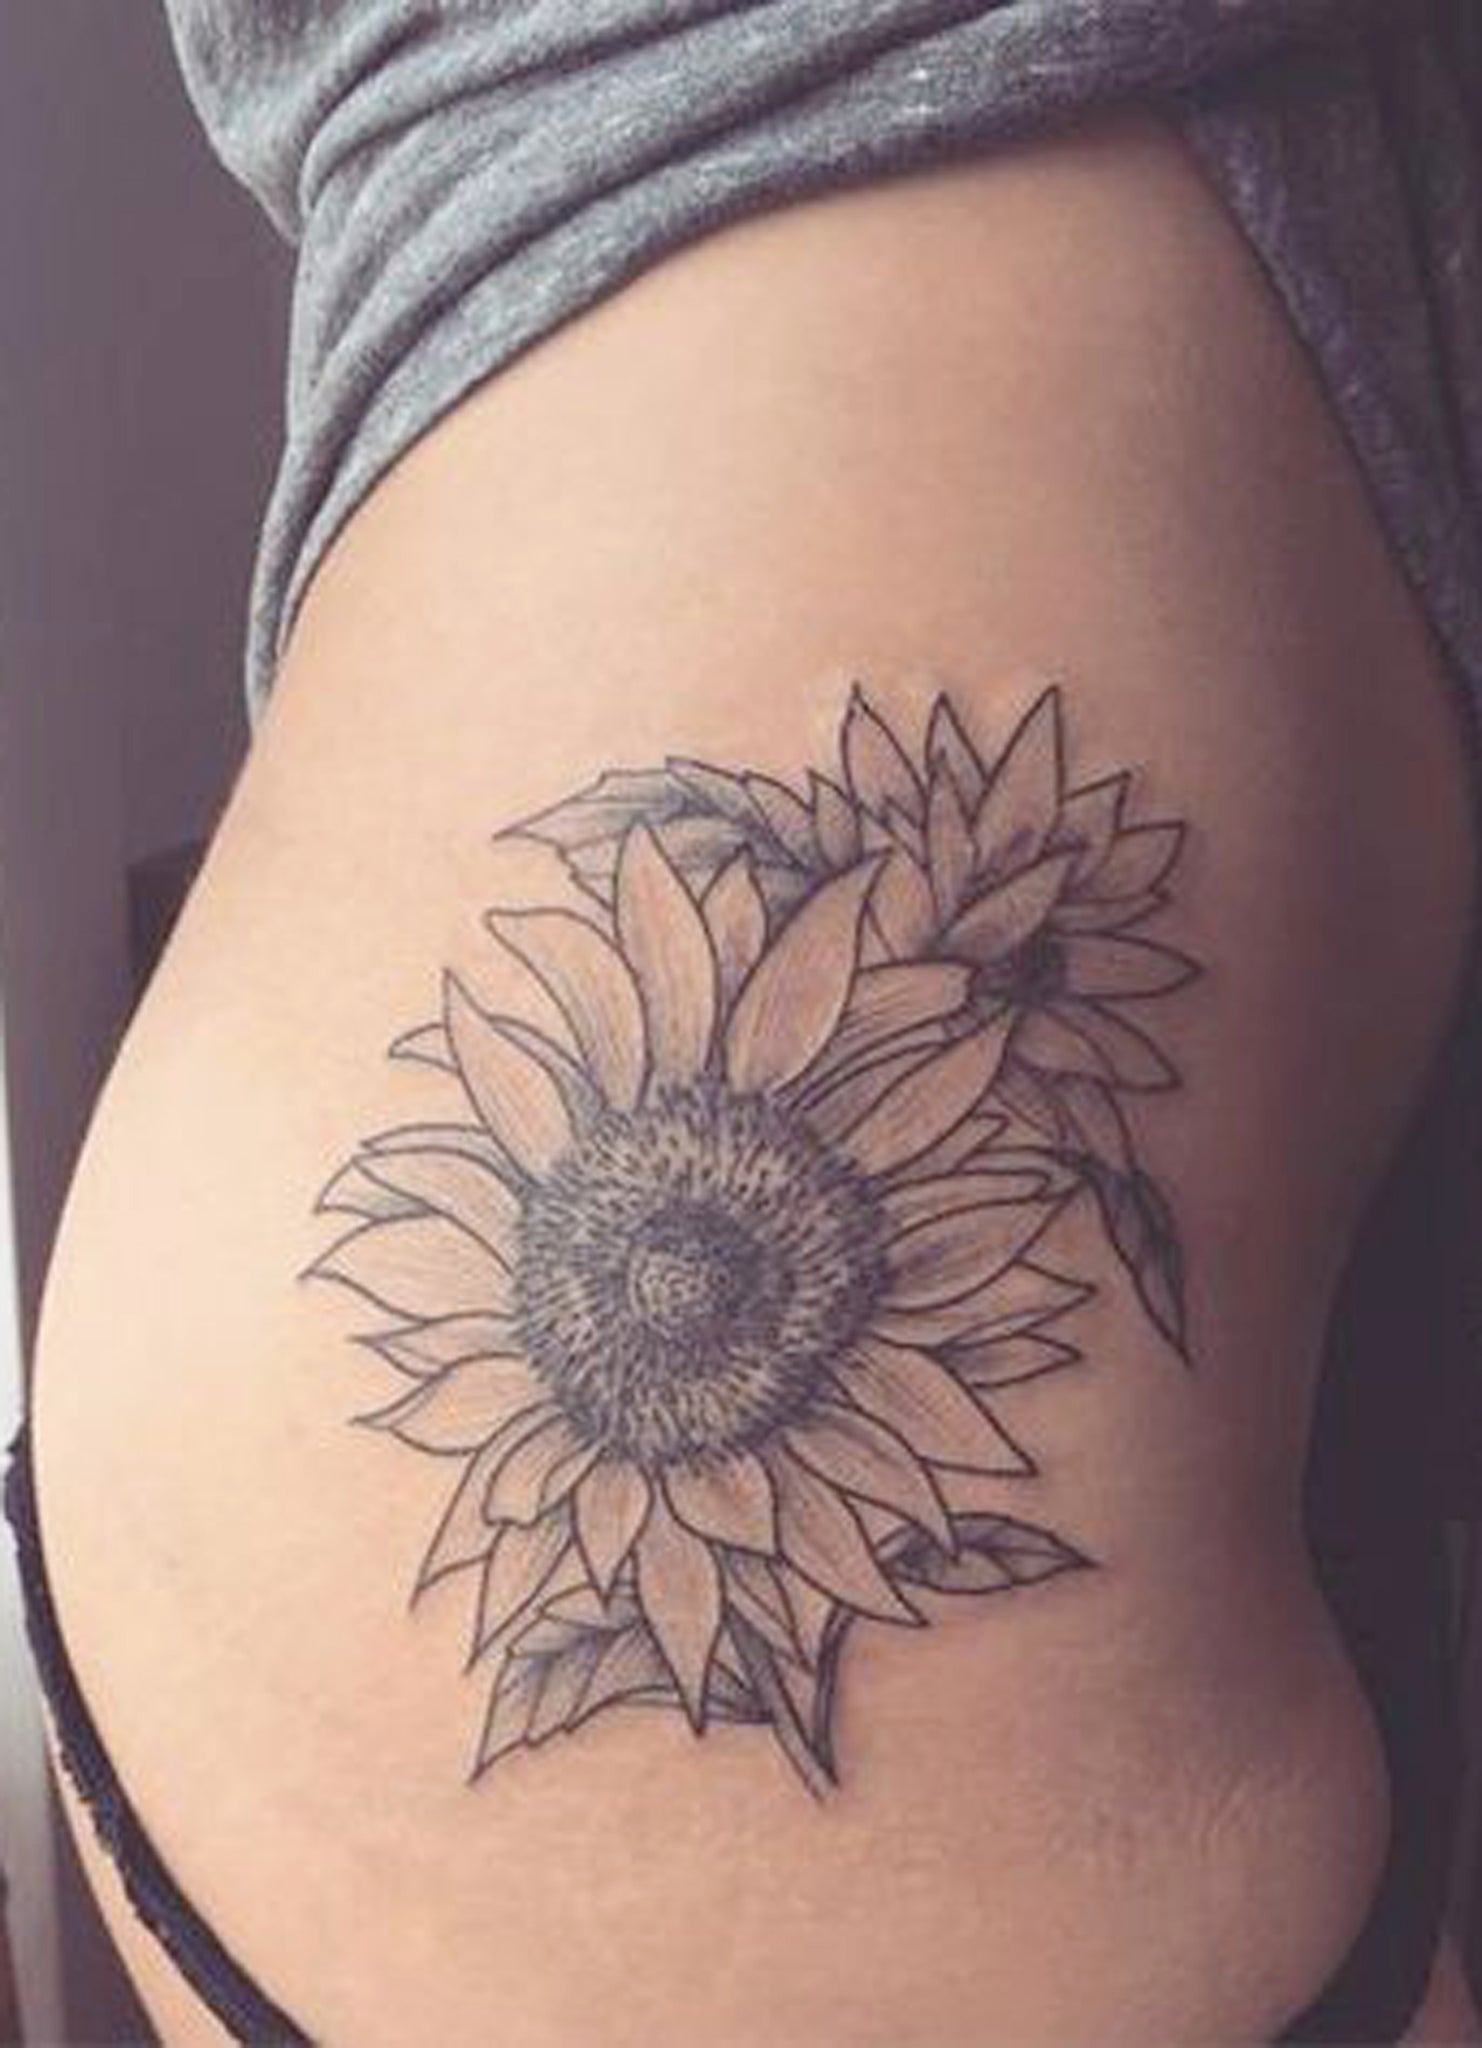 30 womens badass hip thigh tattoo ideas mybodiart sunflower thigh tattoo ideas for women black floral flower side hip tat ideas del izmirmasajfo